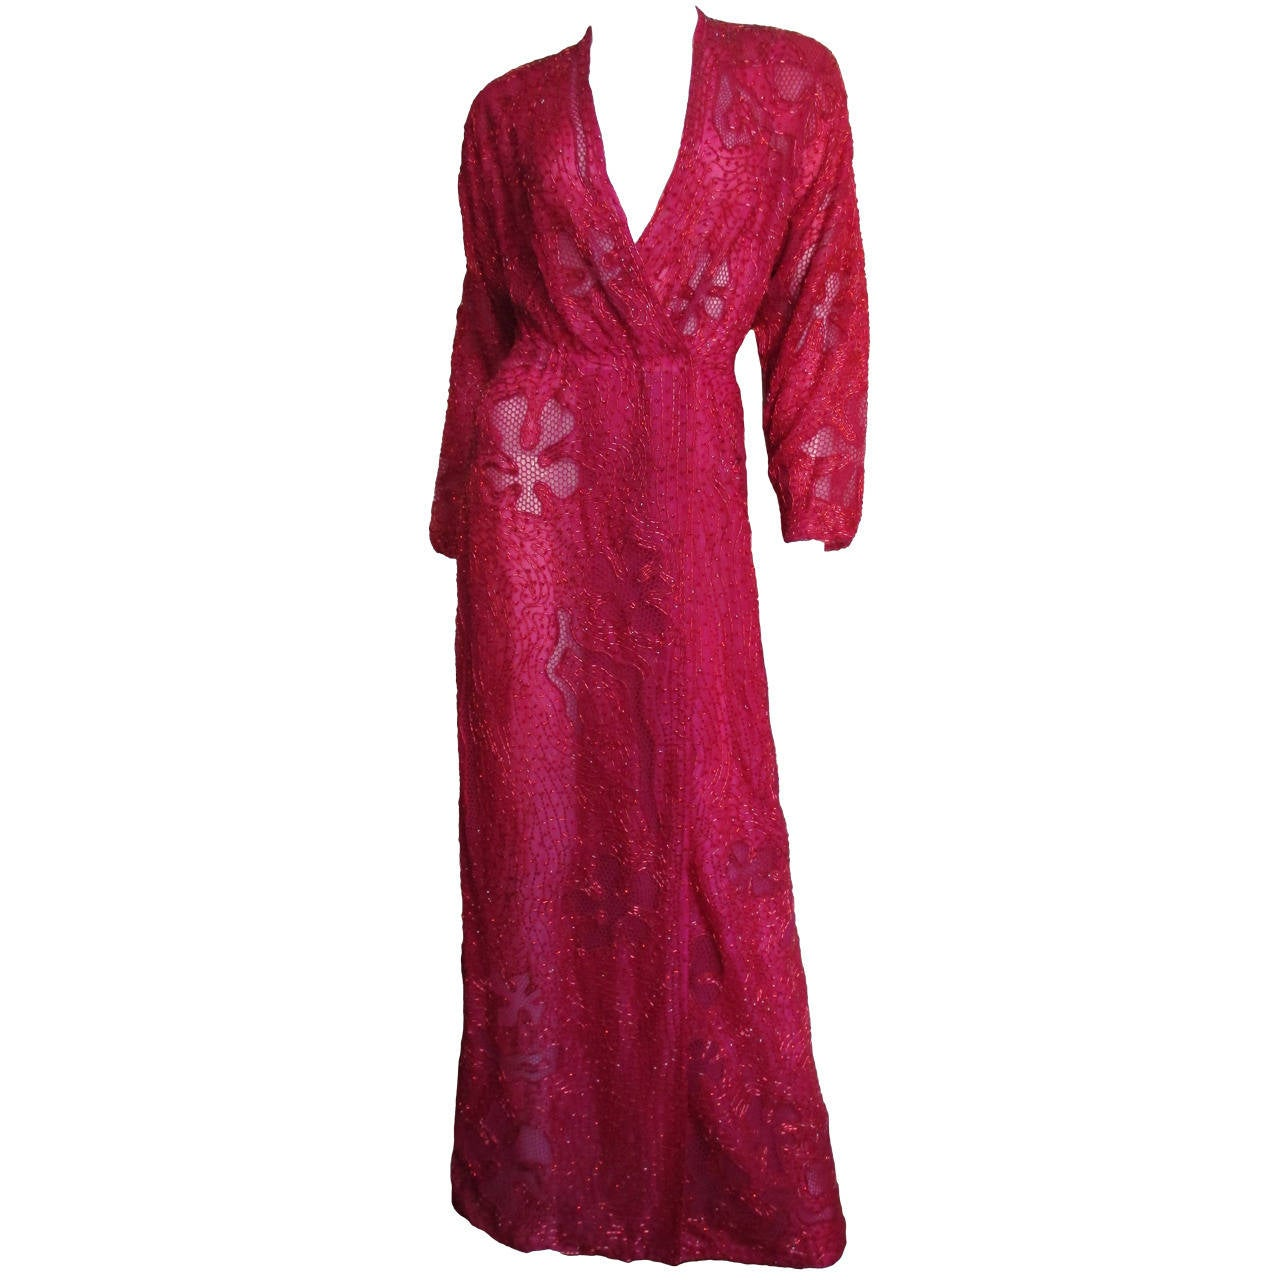 Extraordinary Beaded 1970's Halston Wrap Plunge Gown